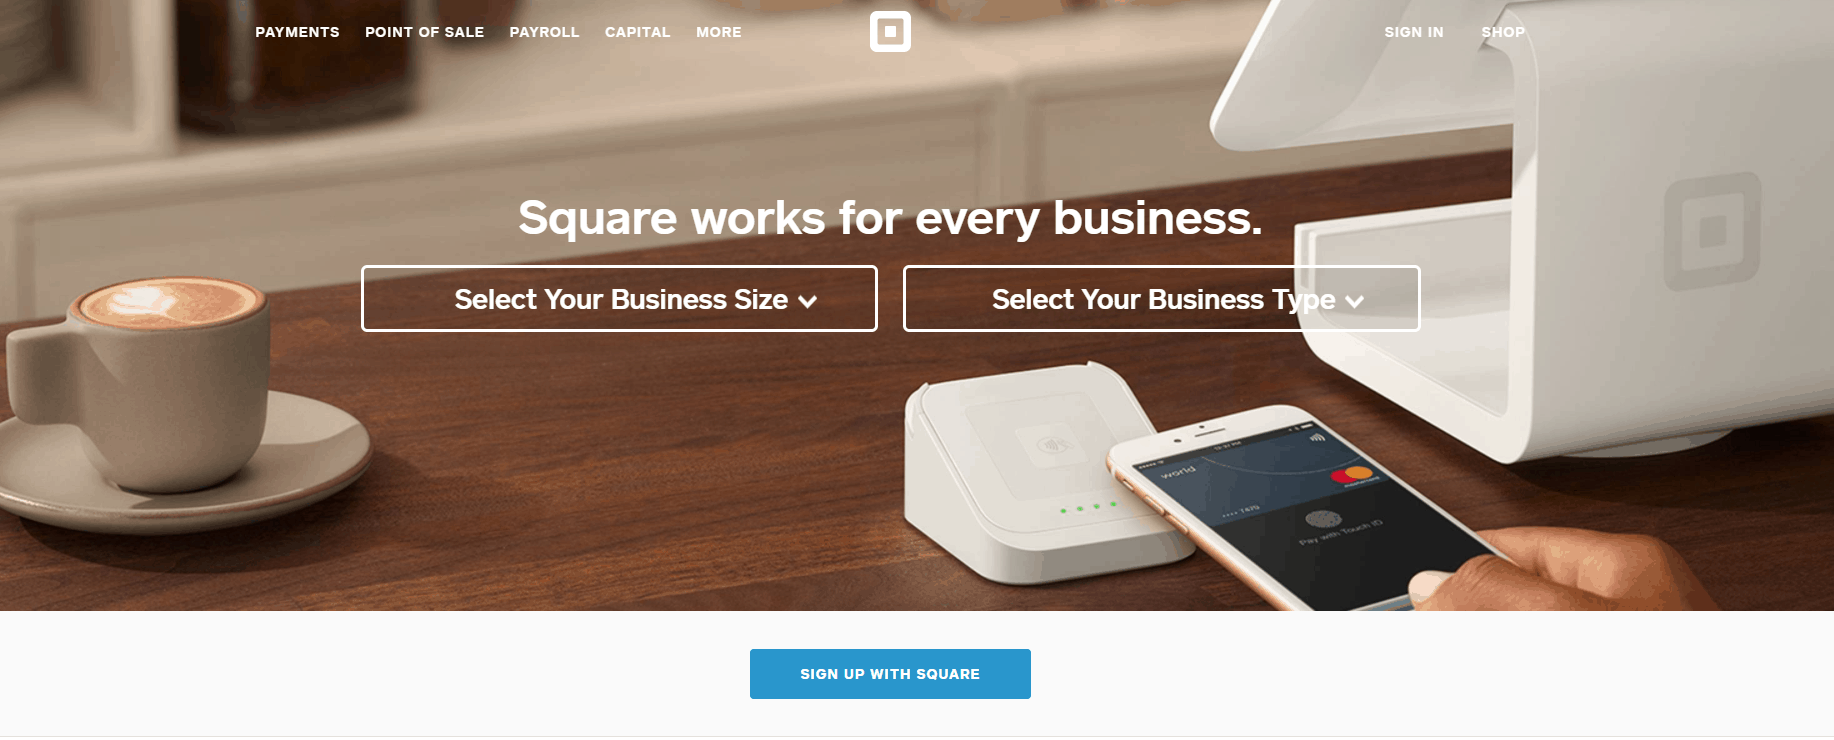 Square uses Ruby on Rails